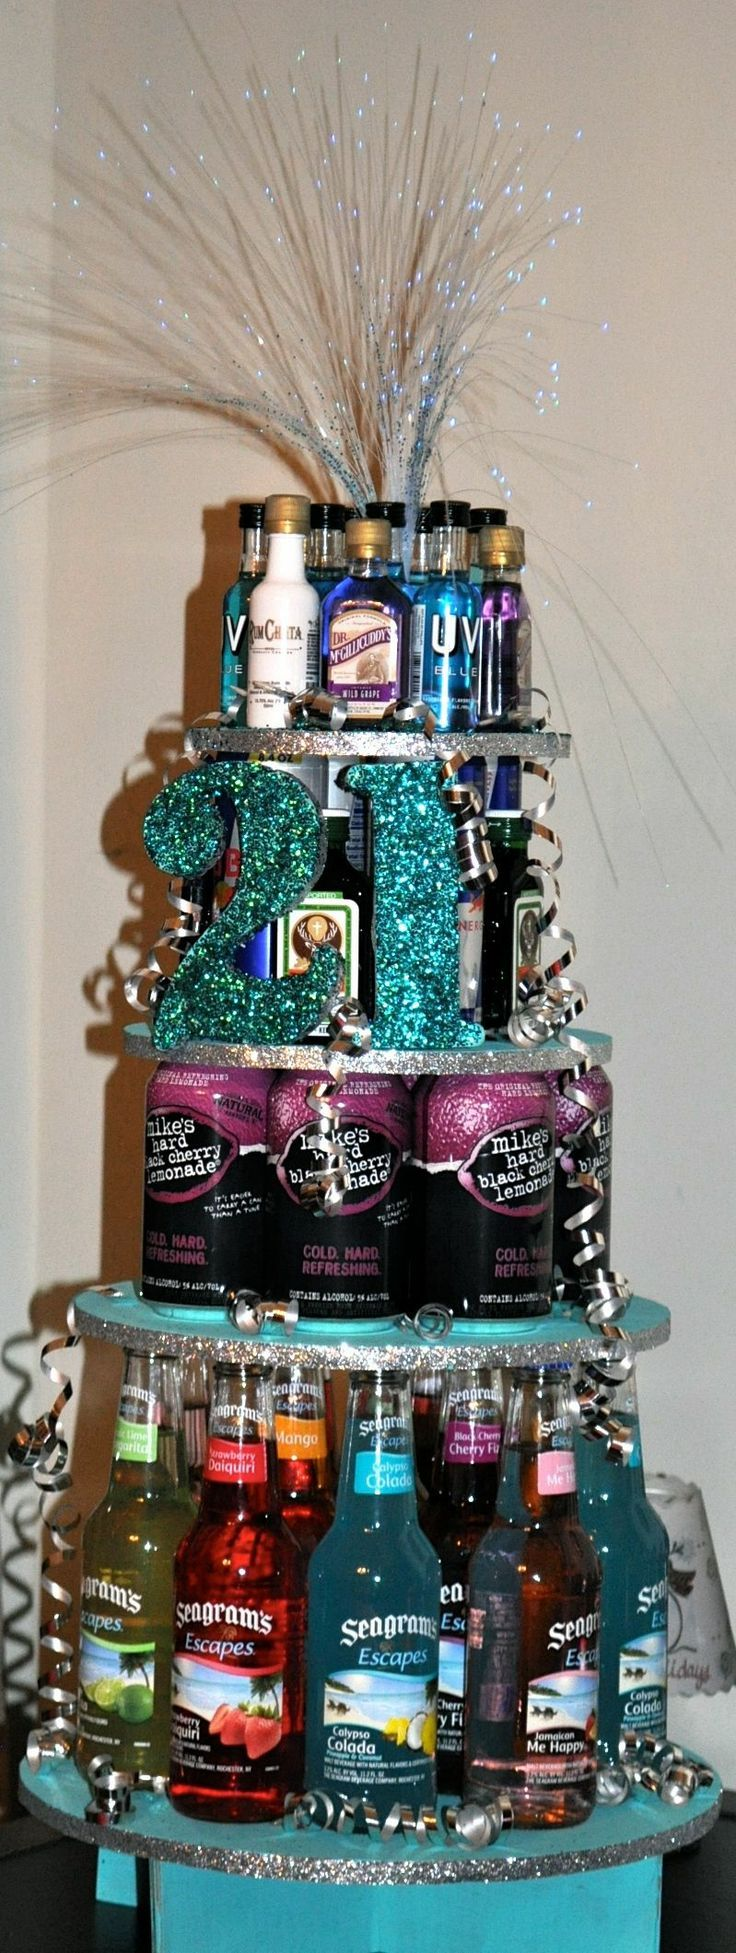 Party goodie bag ideas for girls on birthday cakes for girls 3 years - Girly Version Of The Beer Cake Perfect For Bachelorette Party Birthday Or Just A Girls Night